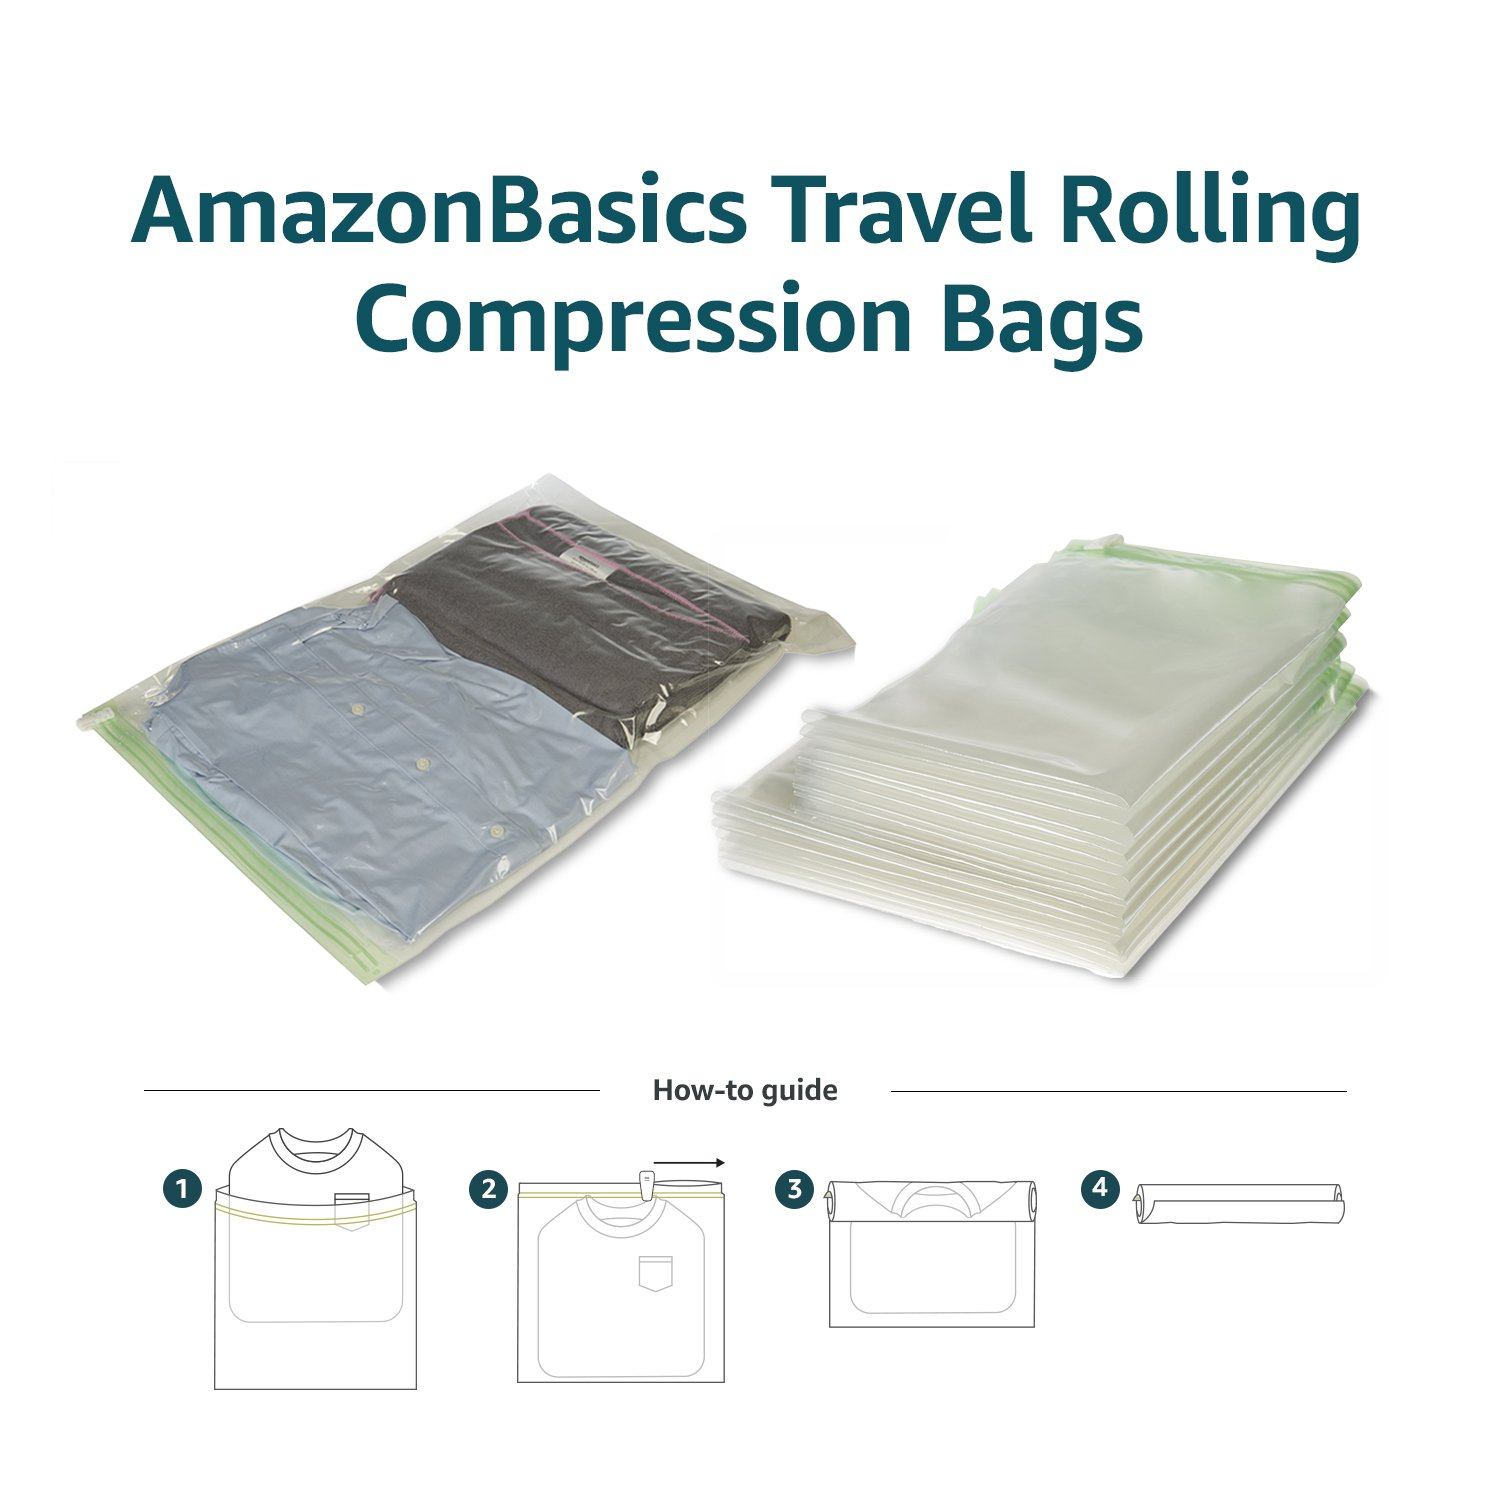 AmazonBasics Travel Rolling Compression Bags, No Vacuum, 10 piece